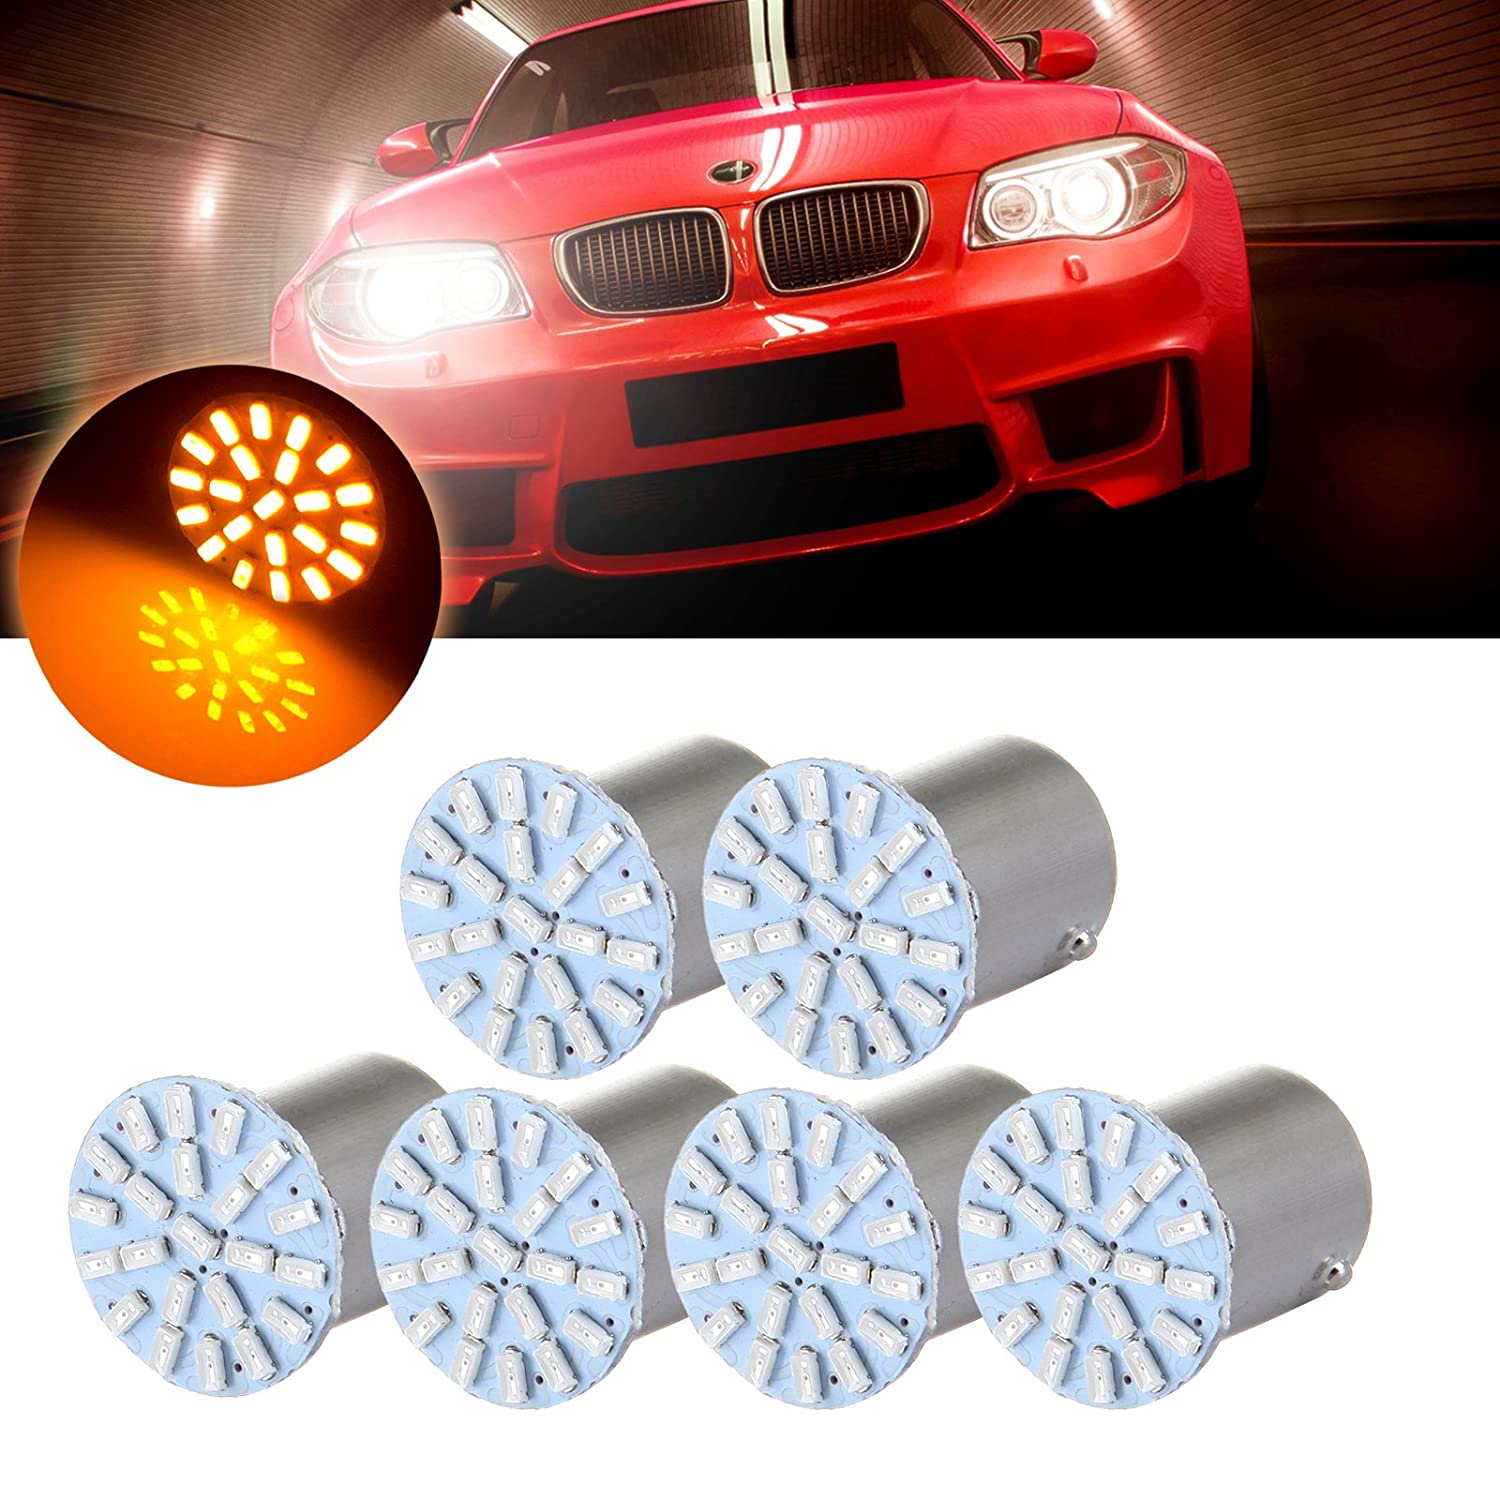 cciyu 6pcs Red 22SMD LED Exterior Light Bulbs Replacement fit for Corner, Stop,Parking light